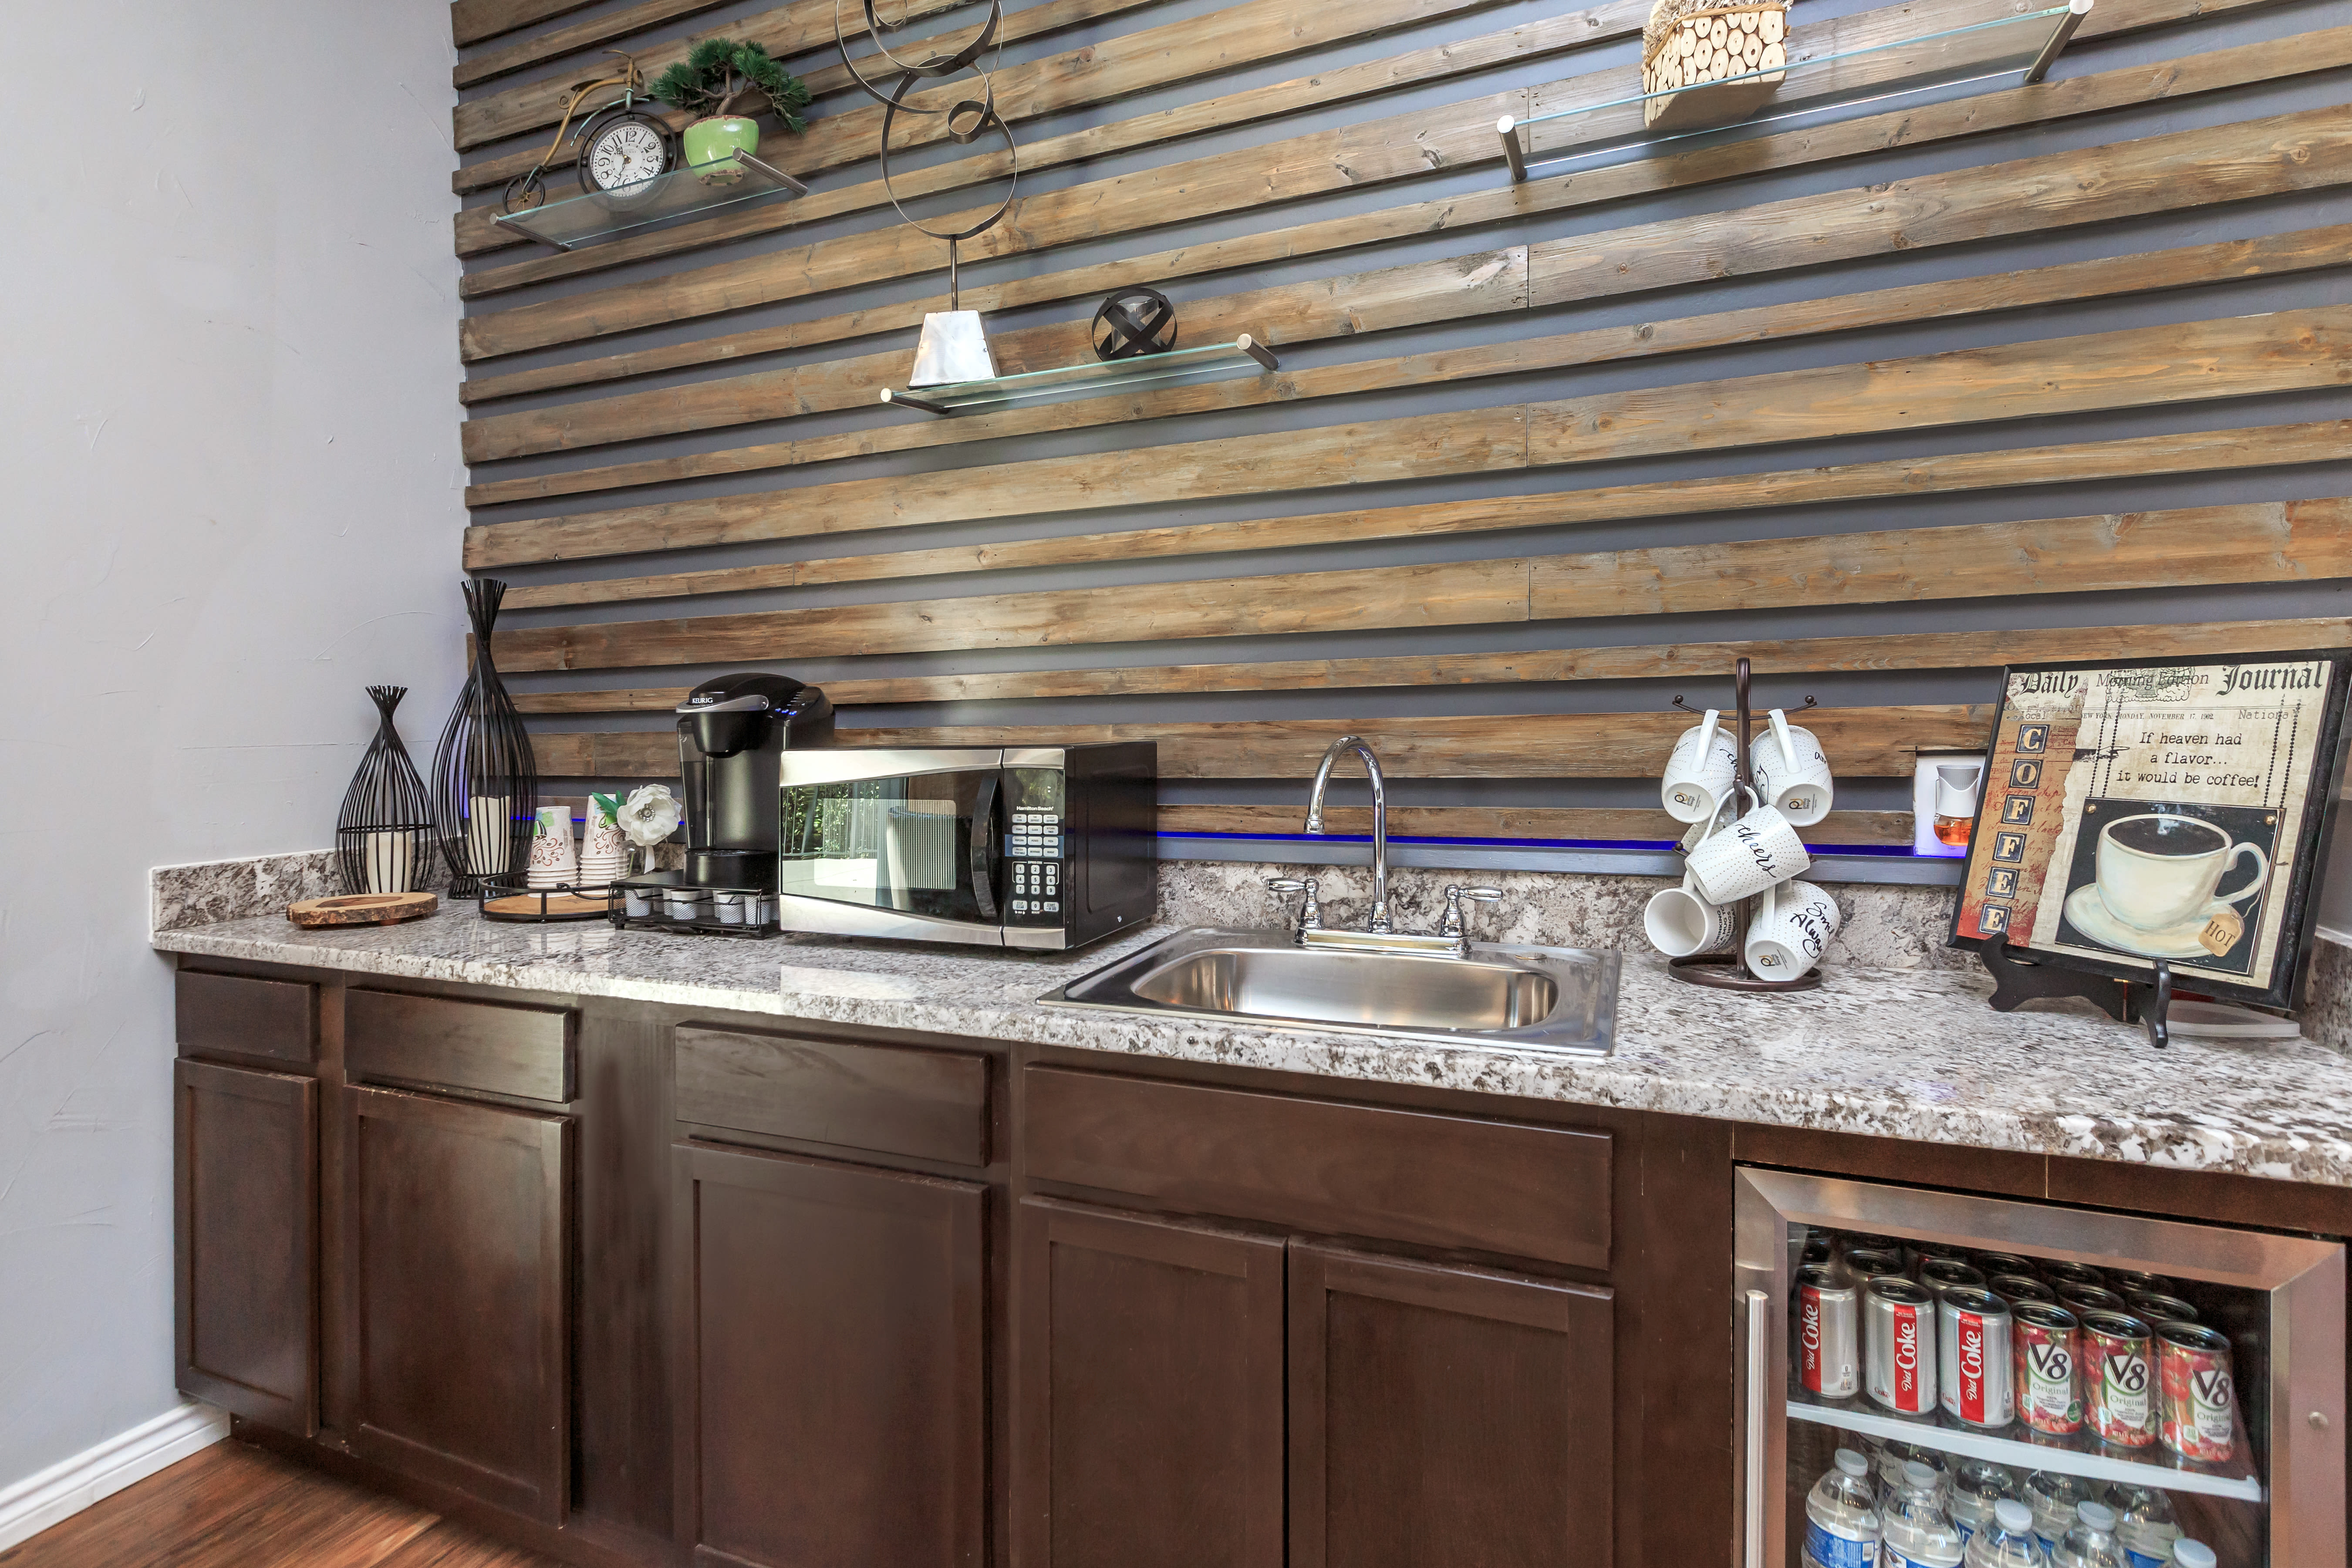 Beverage bar at Windmill Terrace in Bedford, Texas